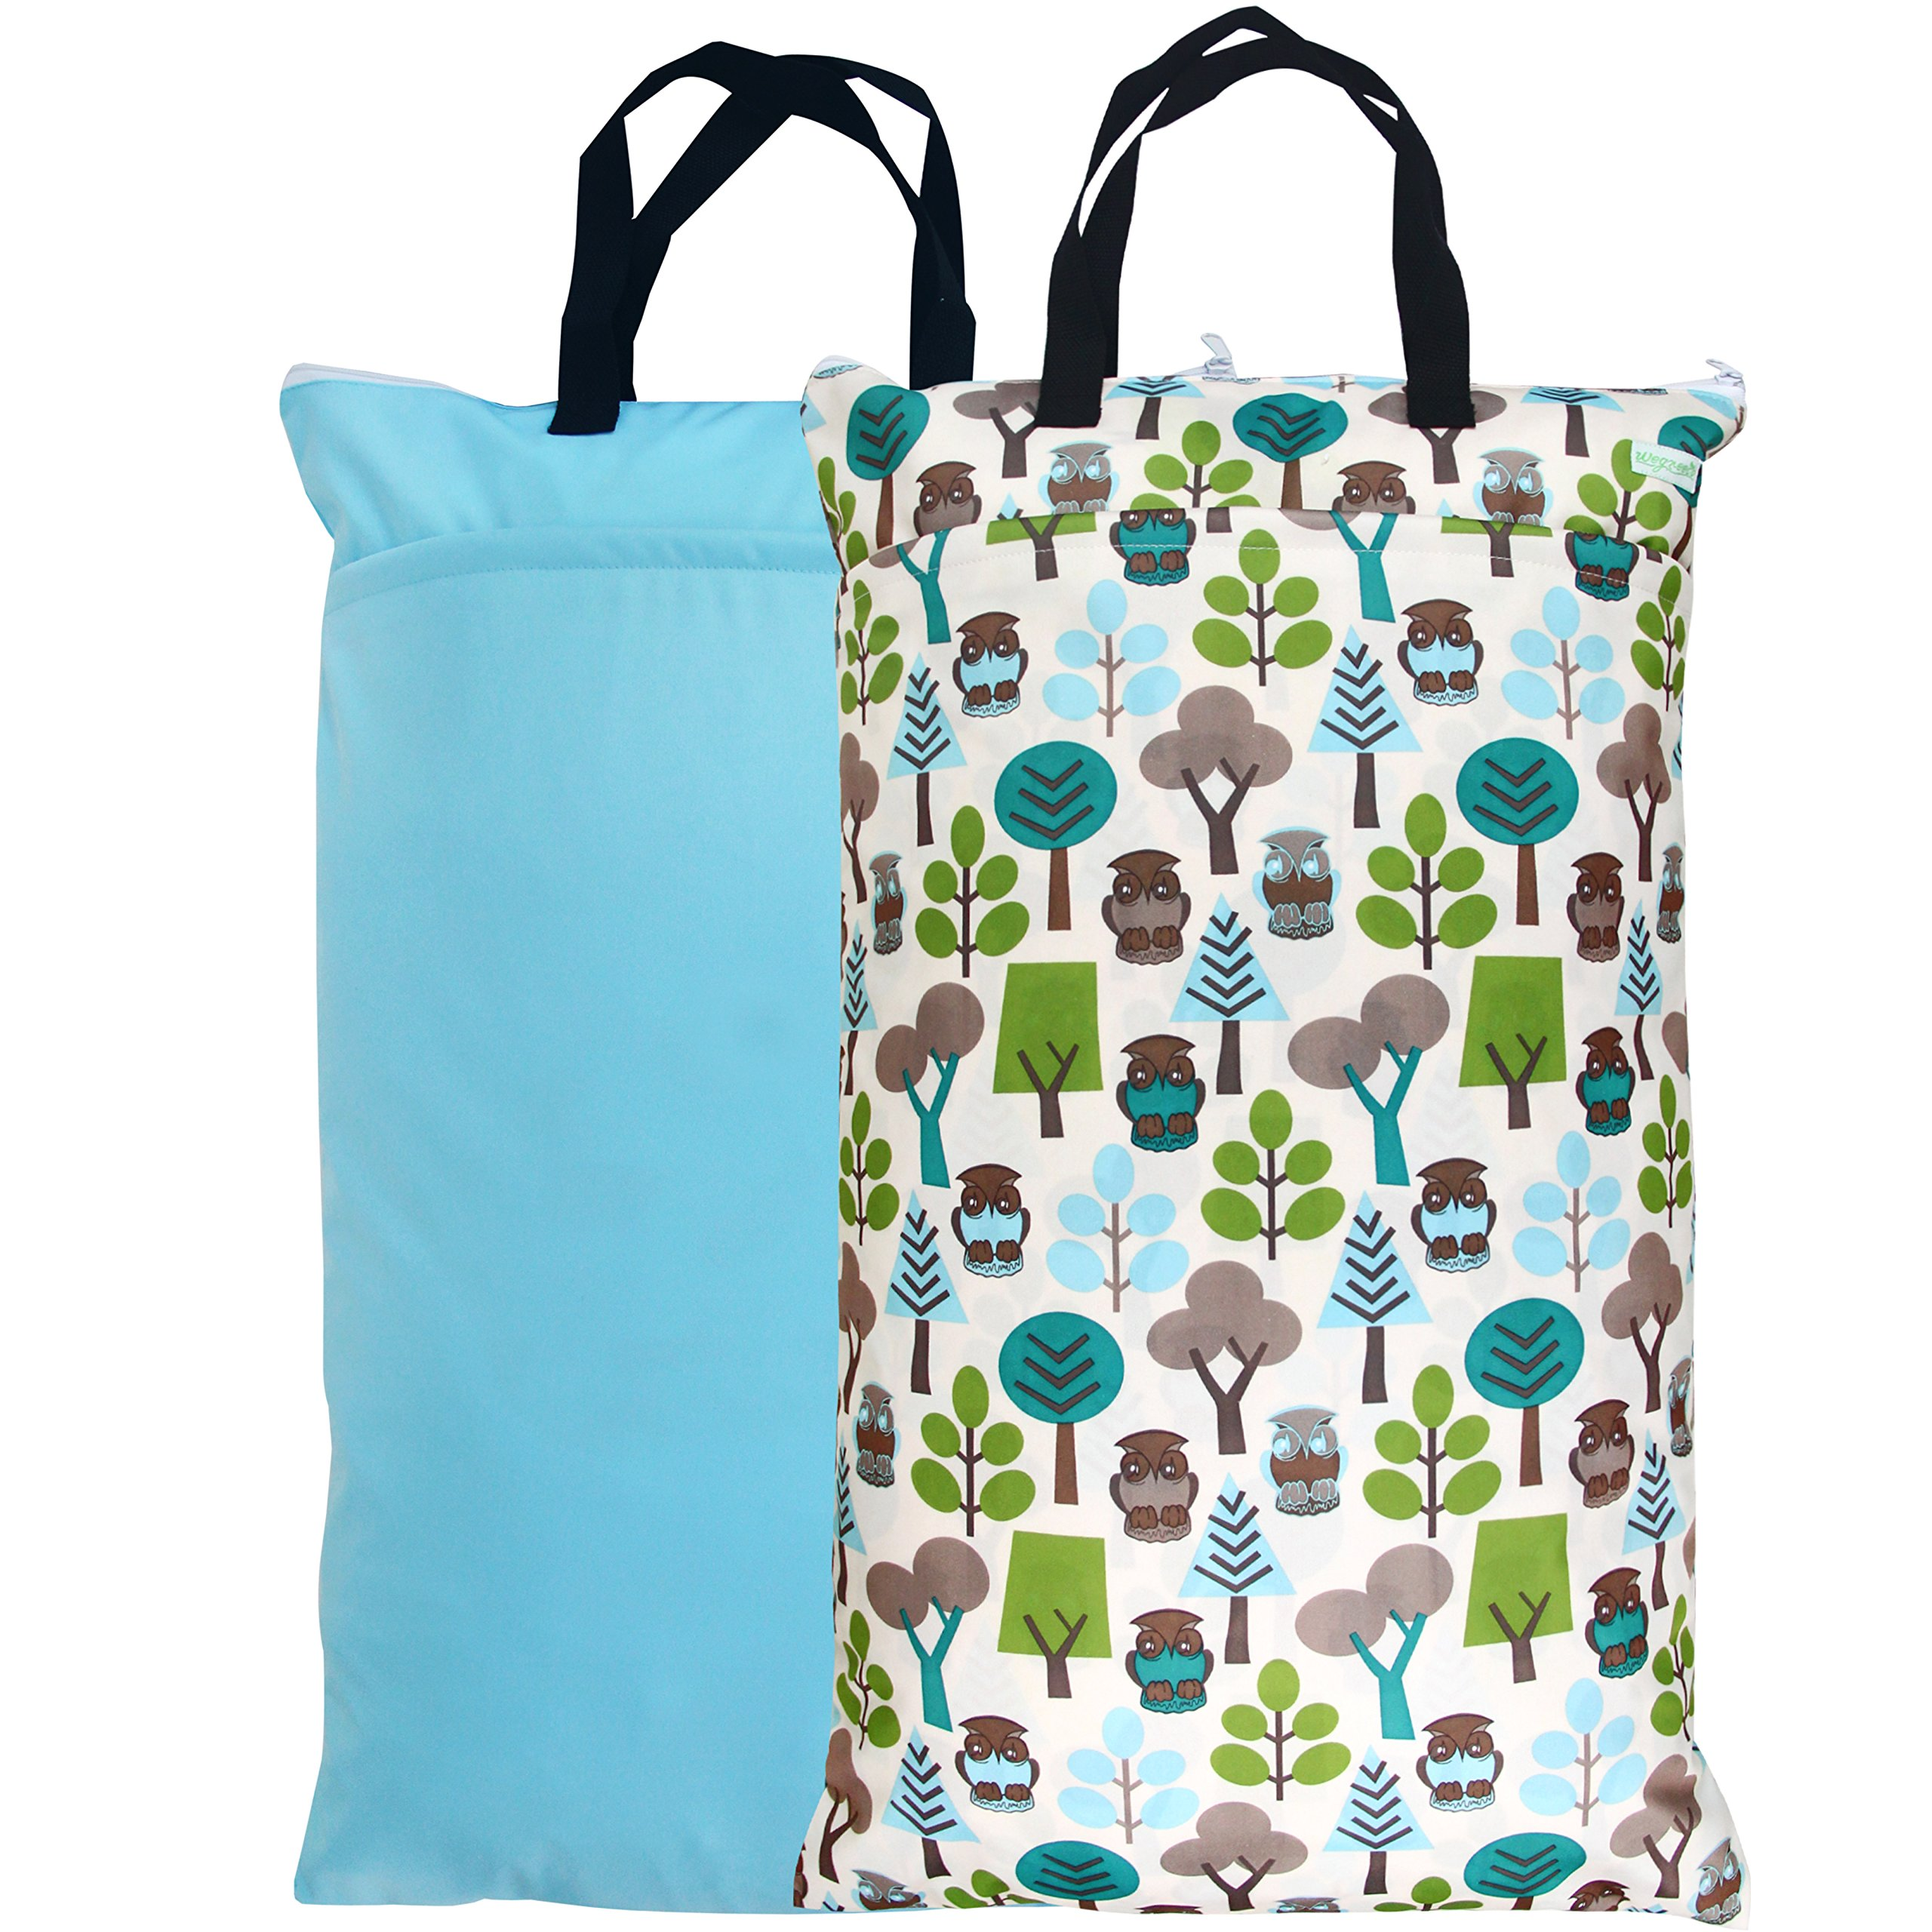 Wegreeco Reusable Hanging Wet Dry Cloth Diaper Bag(2 Pack,Blue Sky,Owl)